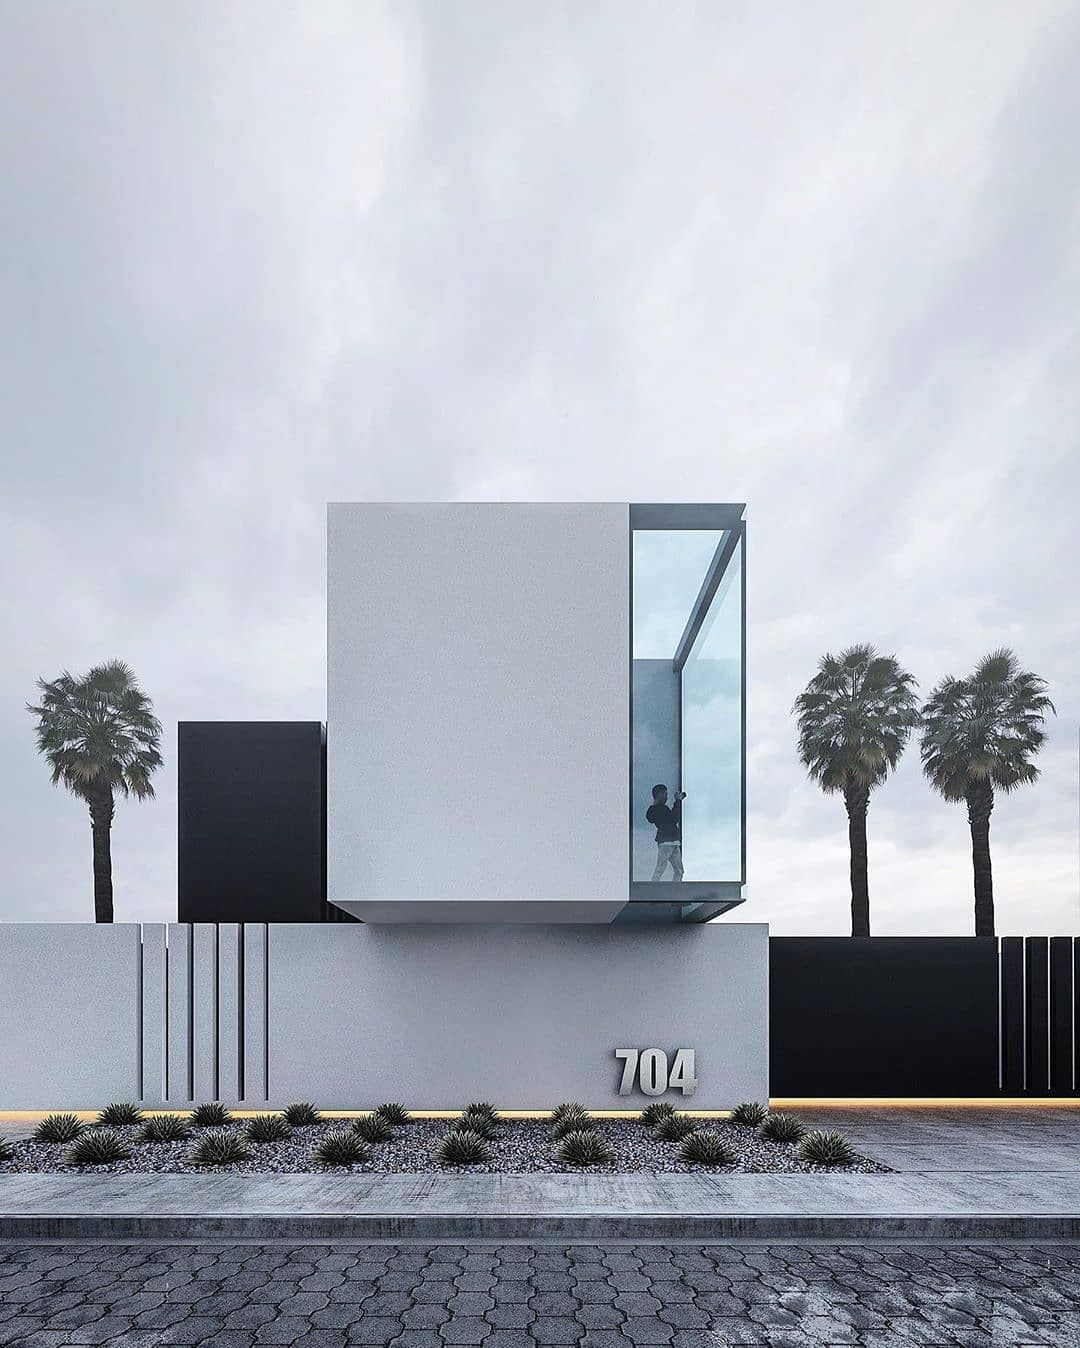 """Photo of MODERN ARCHITECTURE on Instagram: """"Designed by:  @jpr.architecture  follow  @minimalismoarchitecture for more modern .  #art  #modern #modernarchitecture #archilovers…"""""""